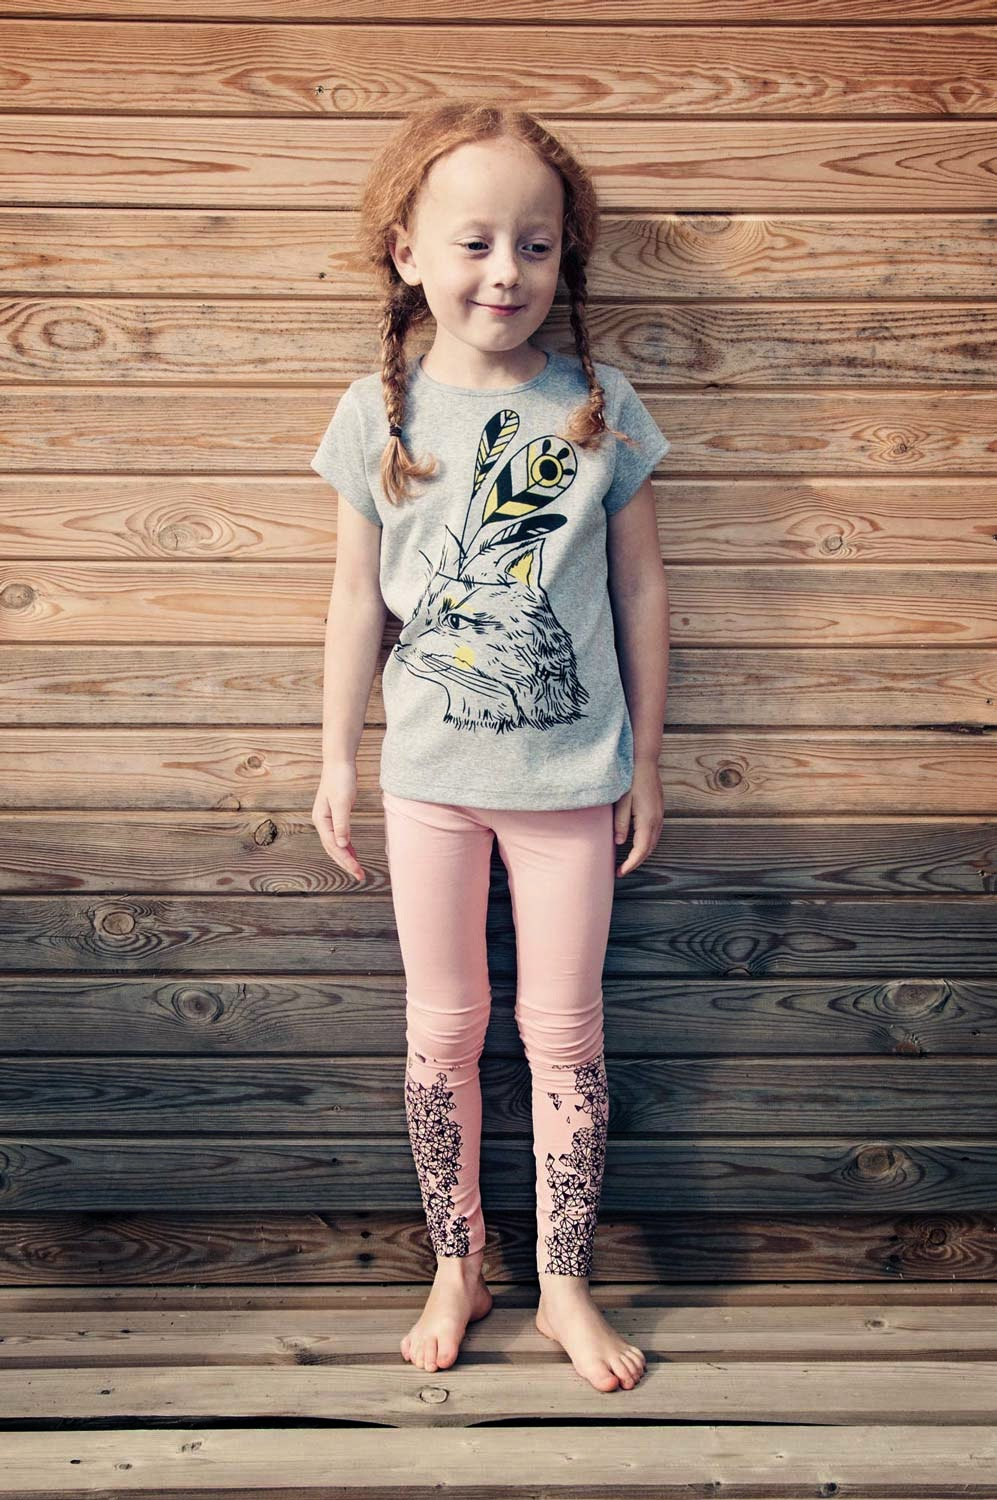 Feathers by Hebe for spring 2014 kidswear collection